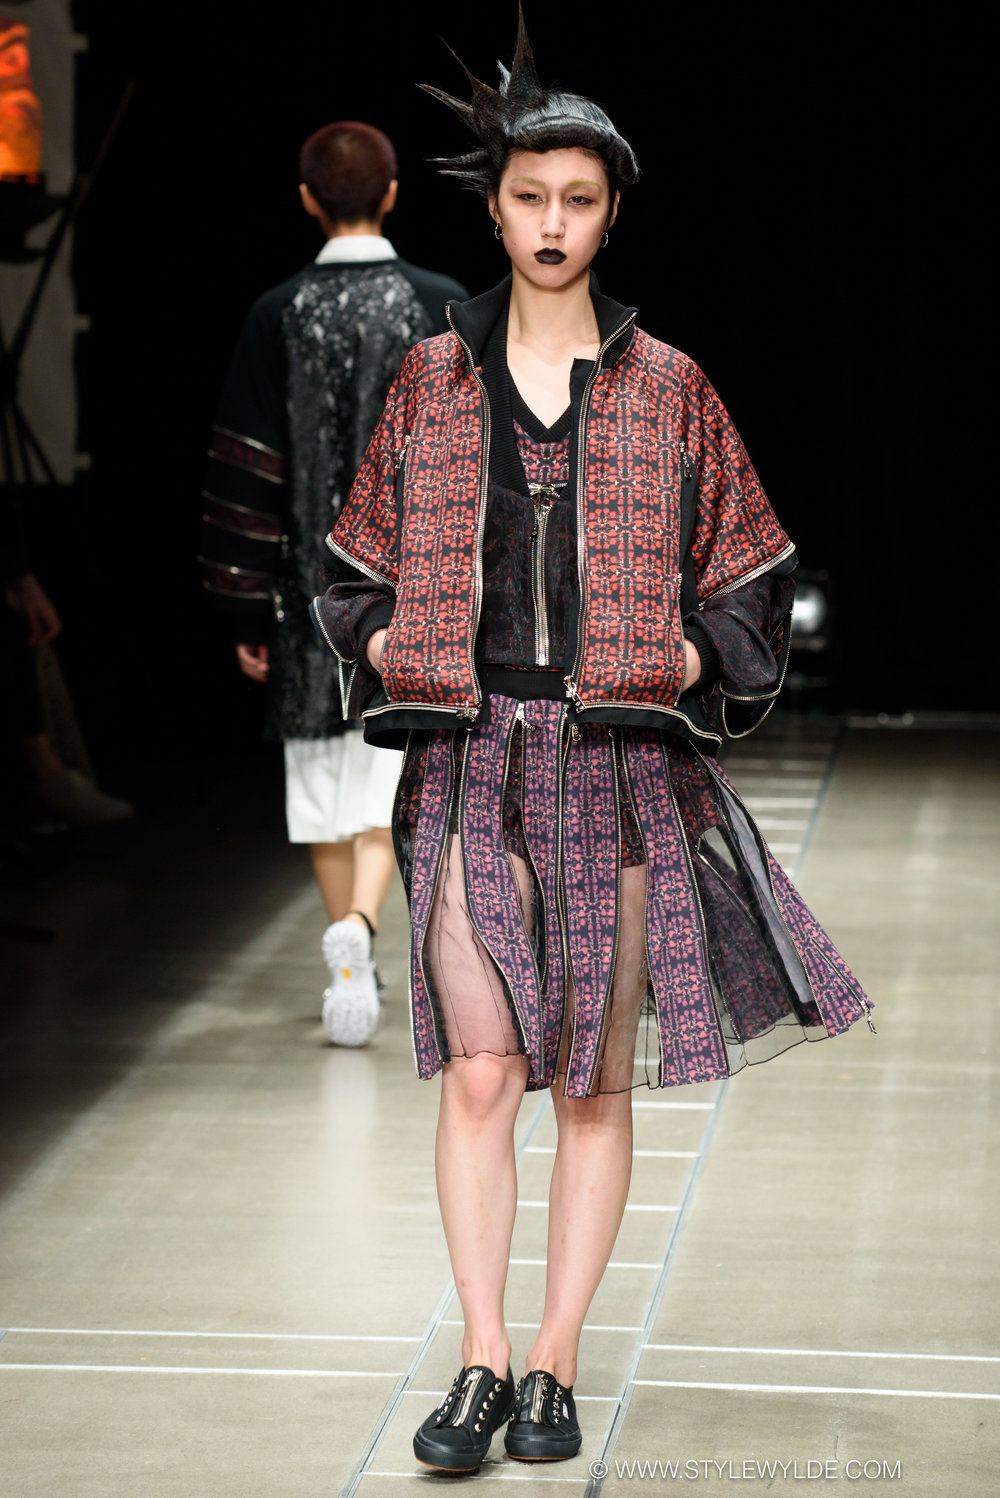 stylewylde_acuod_by_chanu_SS18_runway-24.jpg